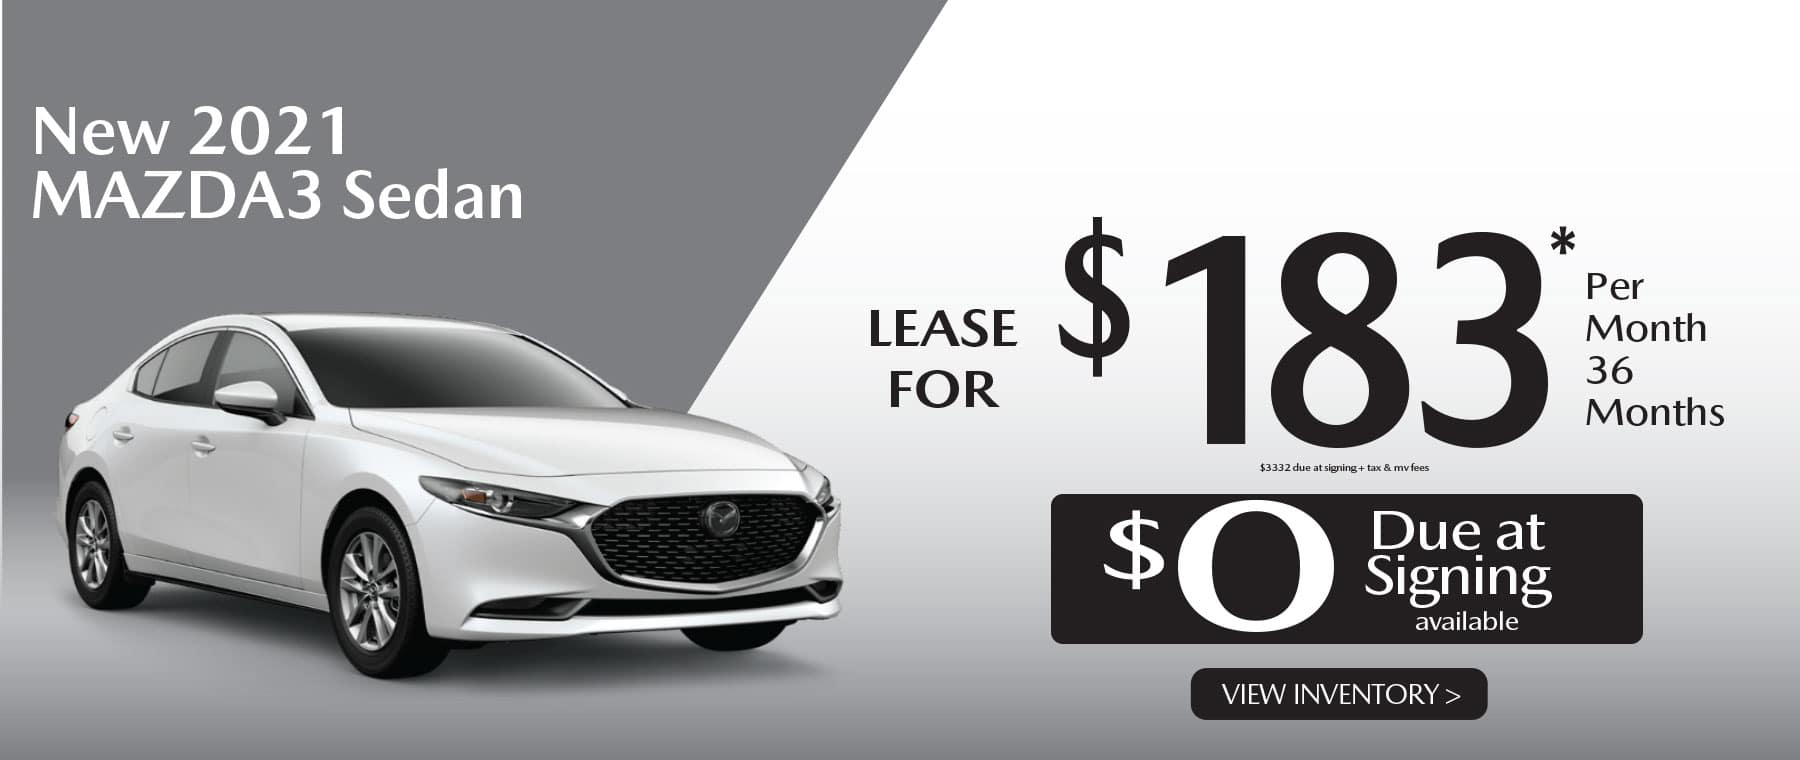 01u MAZDA3 hi New Lease Special Offer Garden City Mazda NY